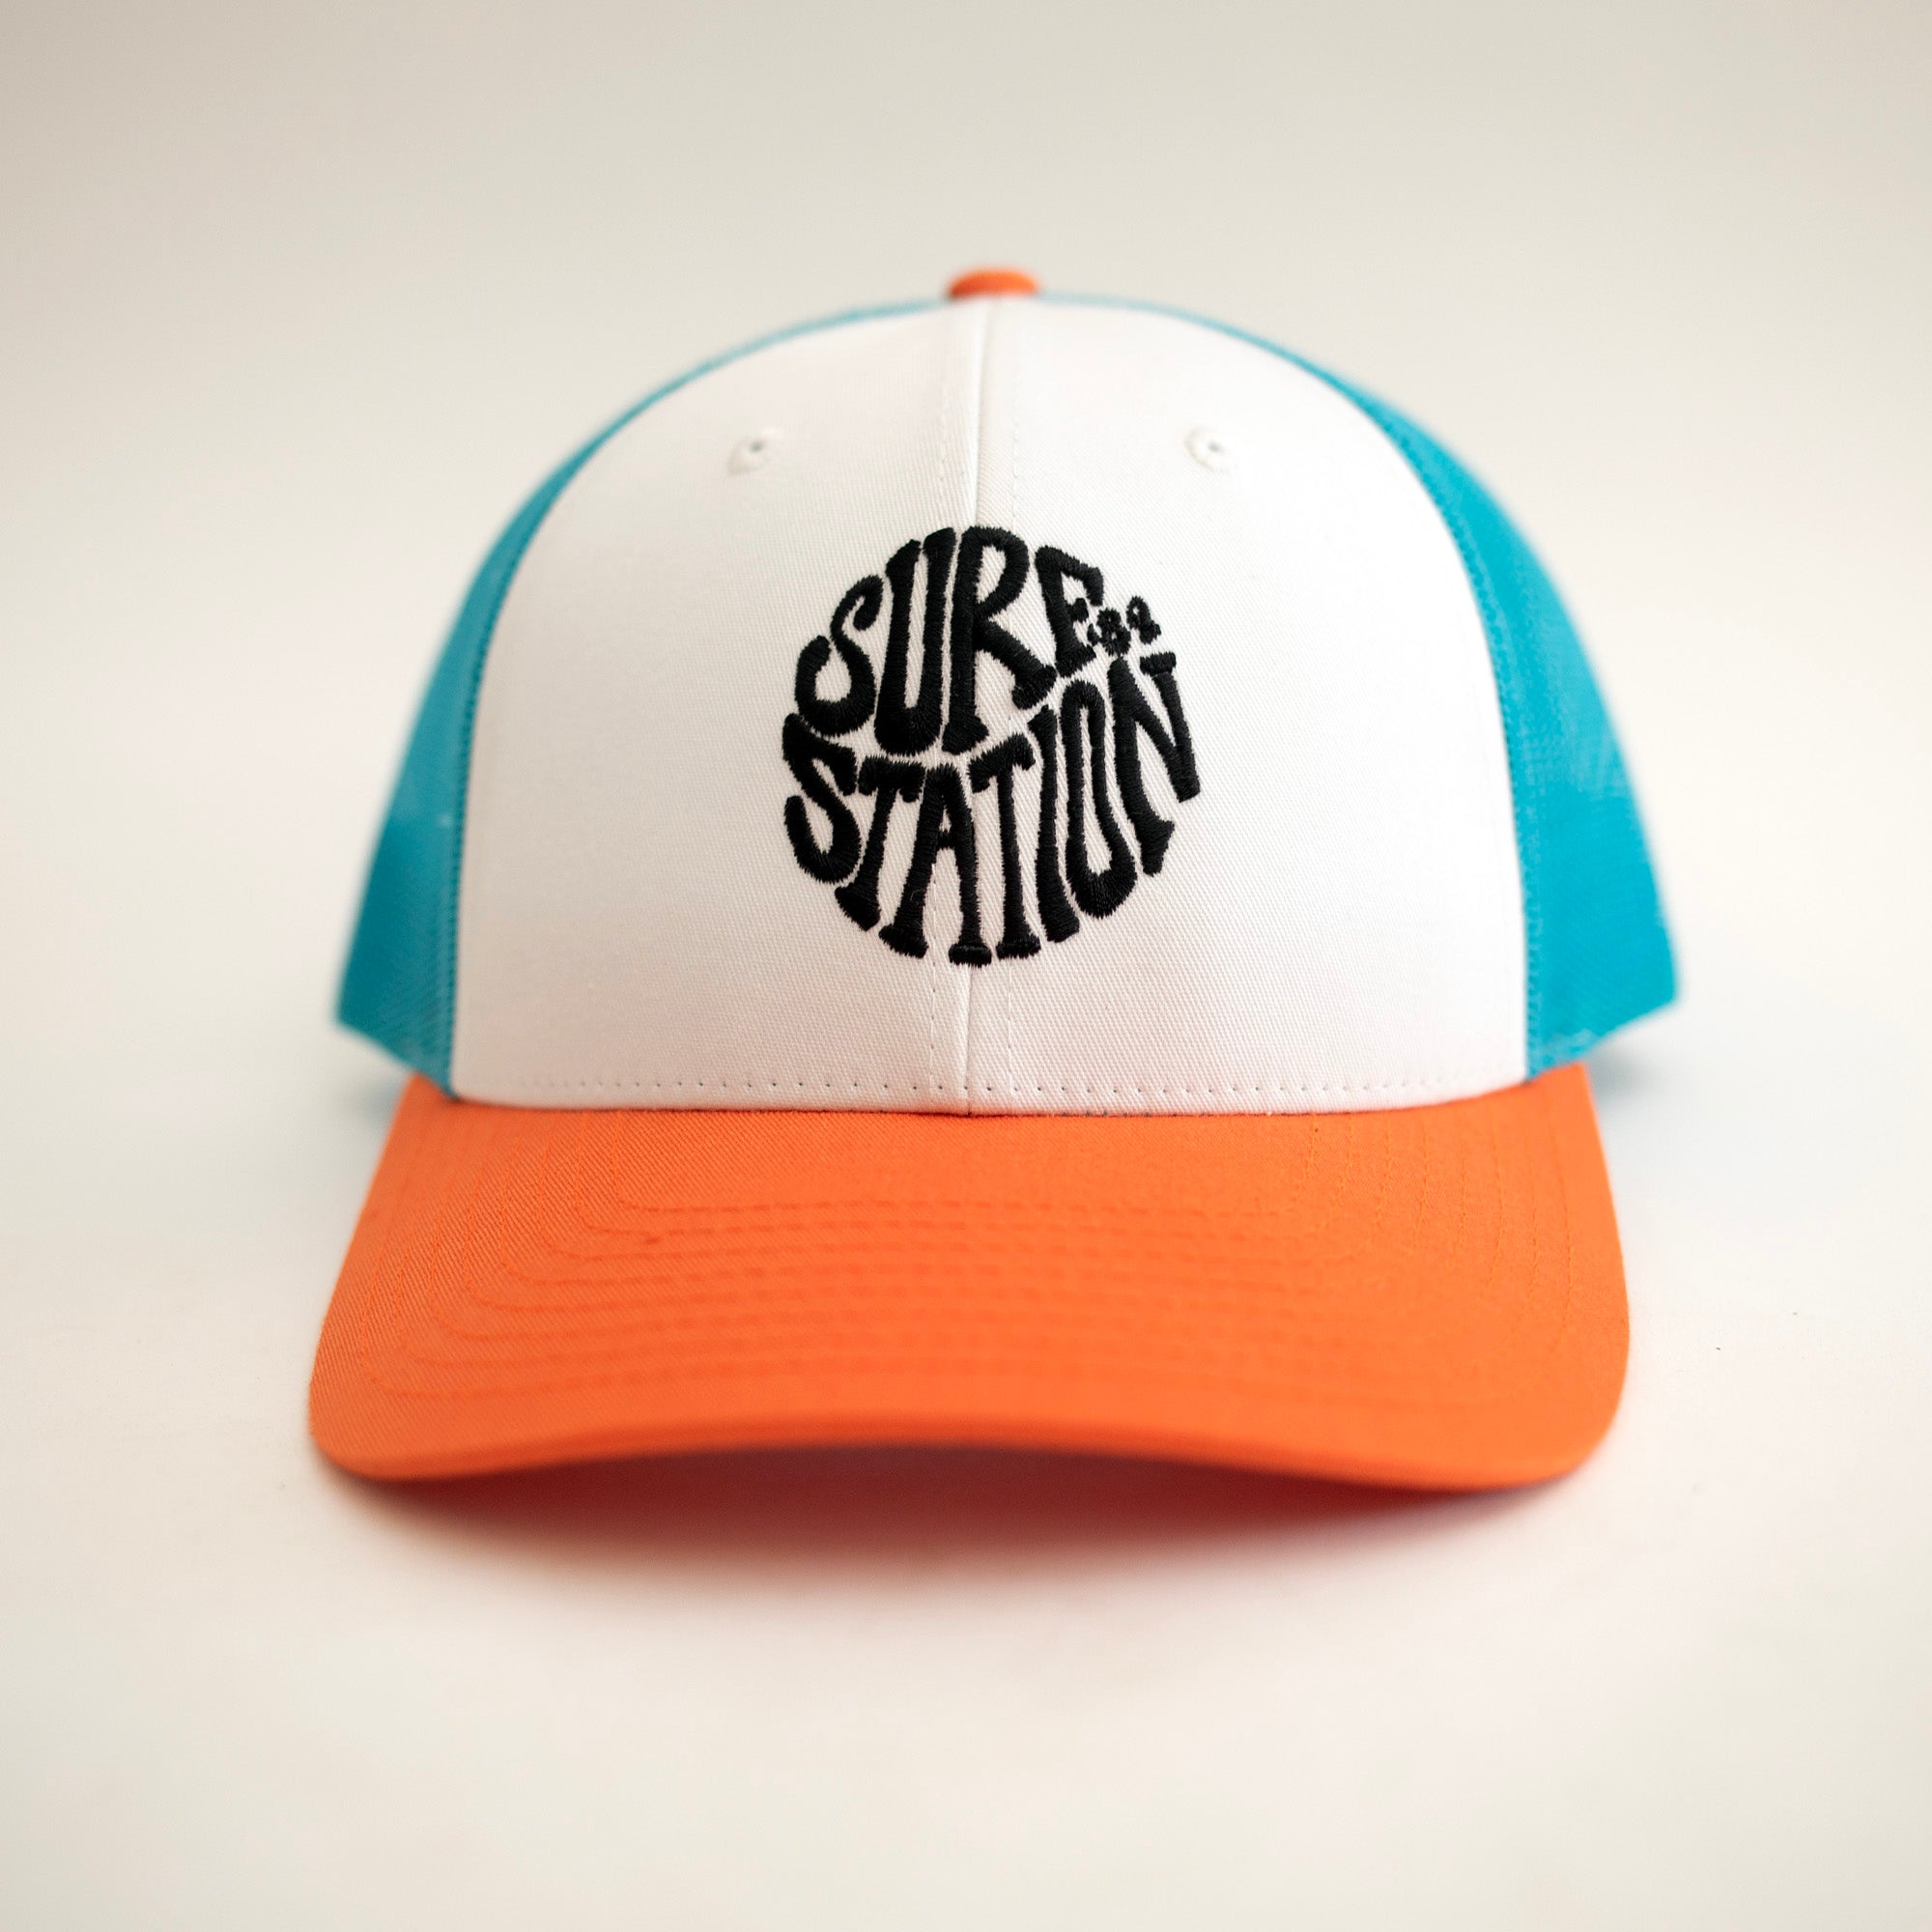 Surf Station '84 Men's Low-Profile Trucker Hat